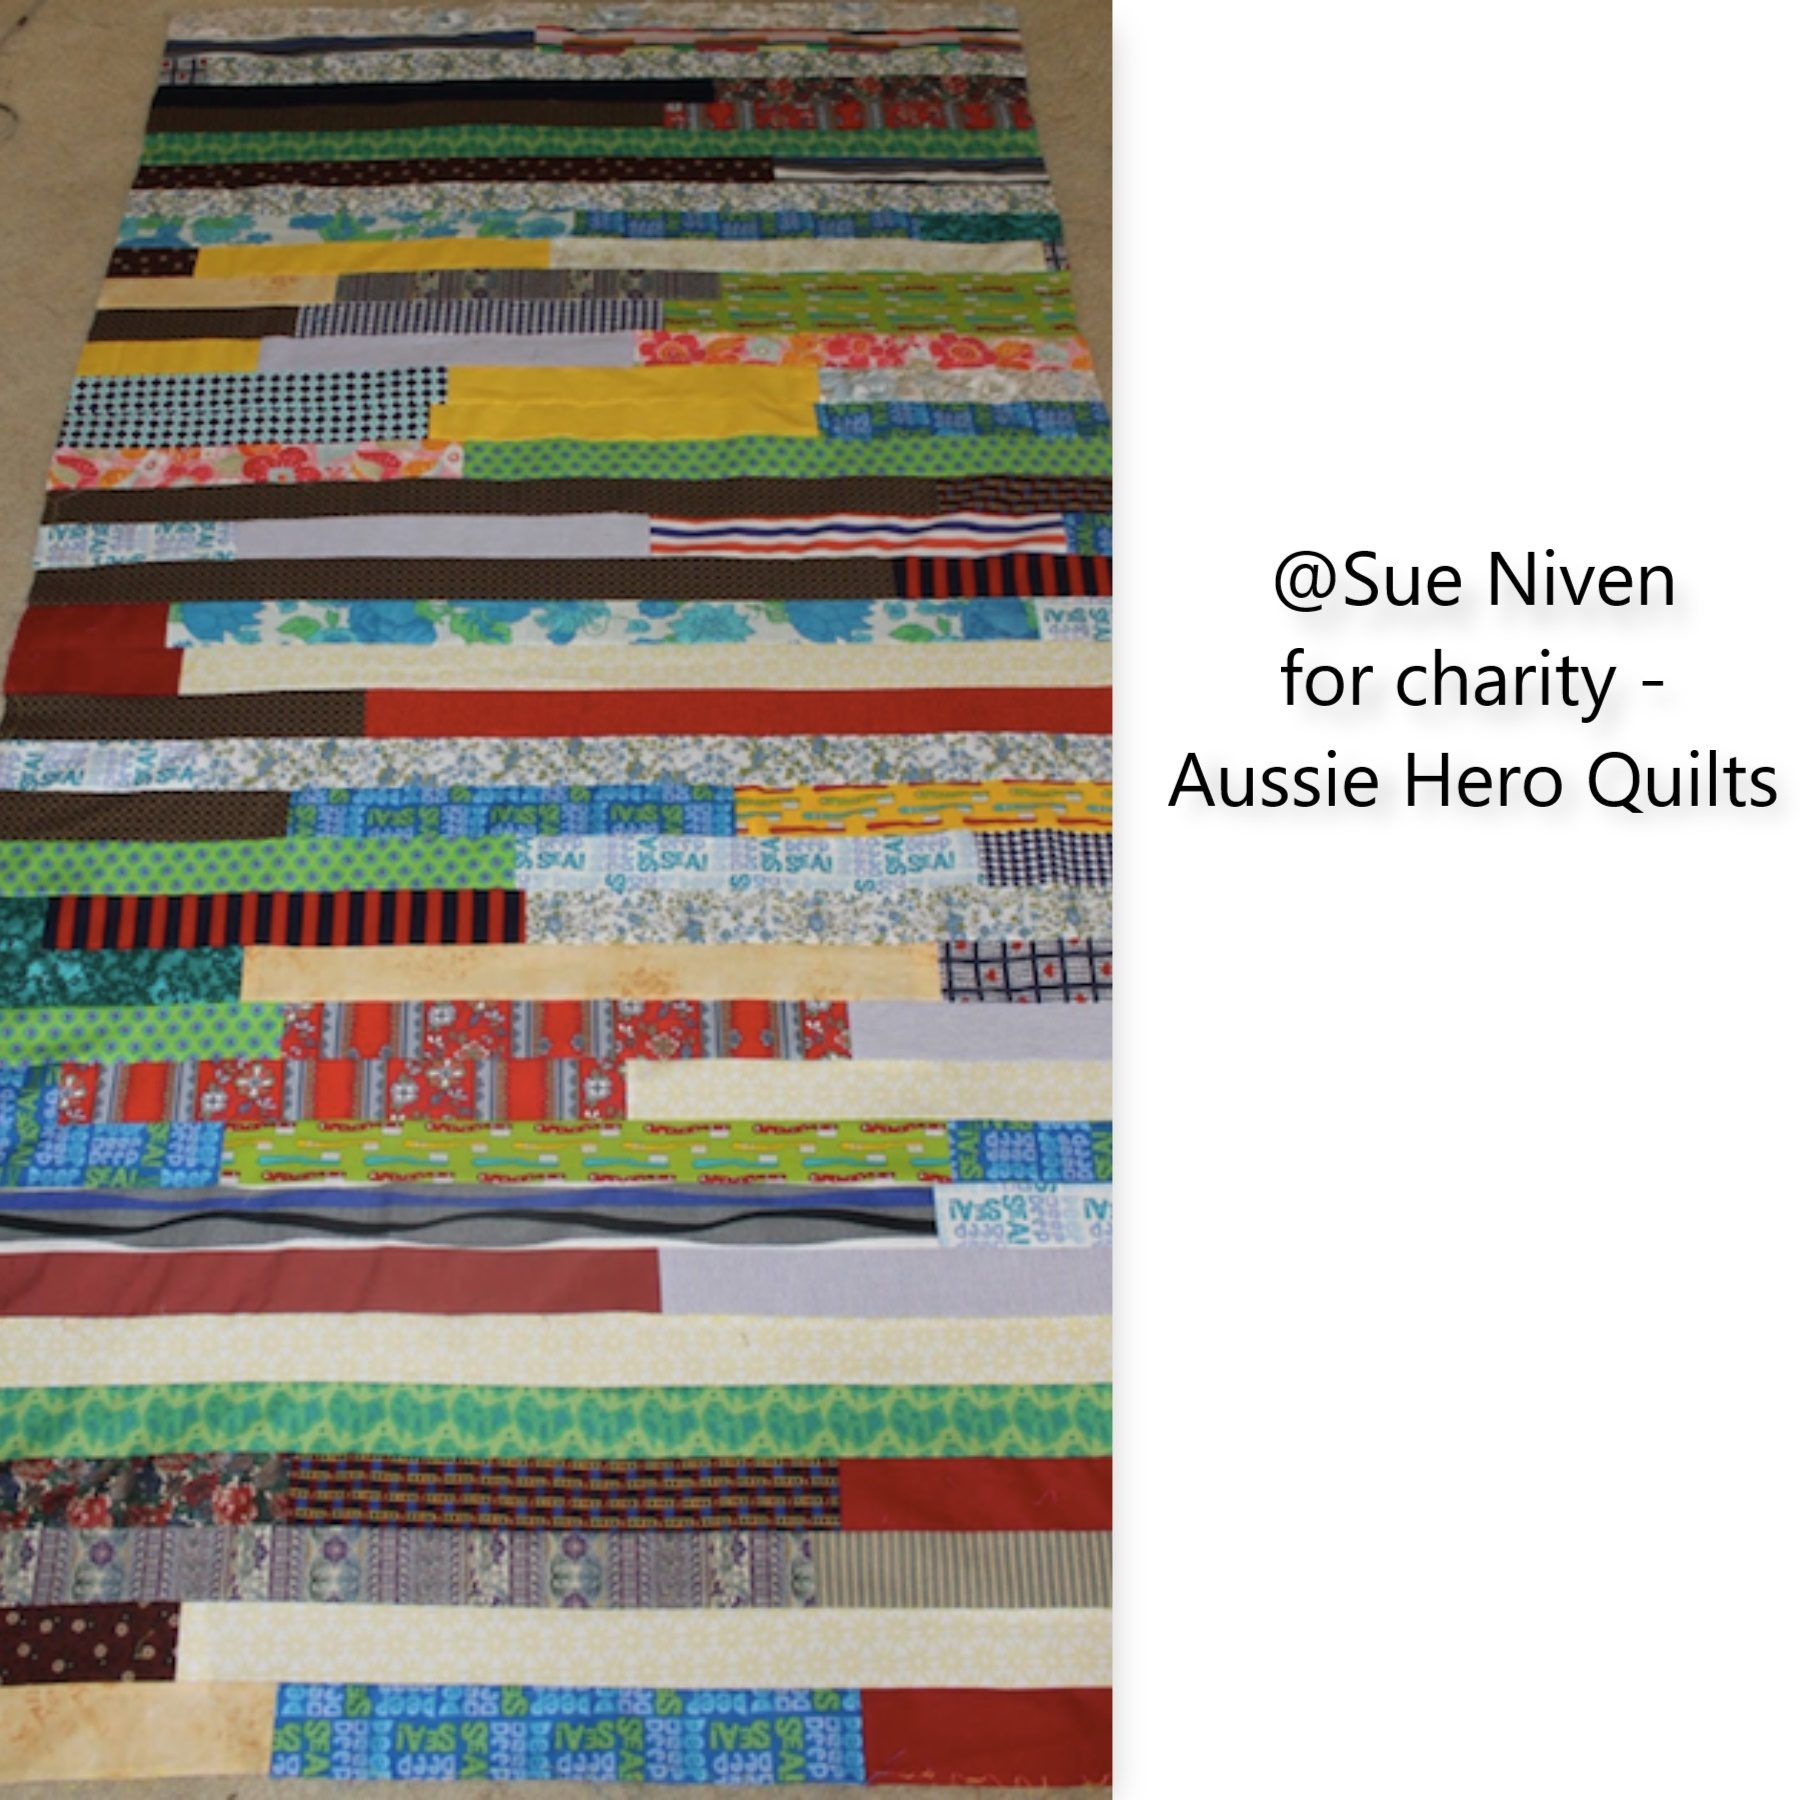 5_-sue-niven-for-charity-aussie-hero-quilts-cms